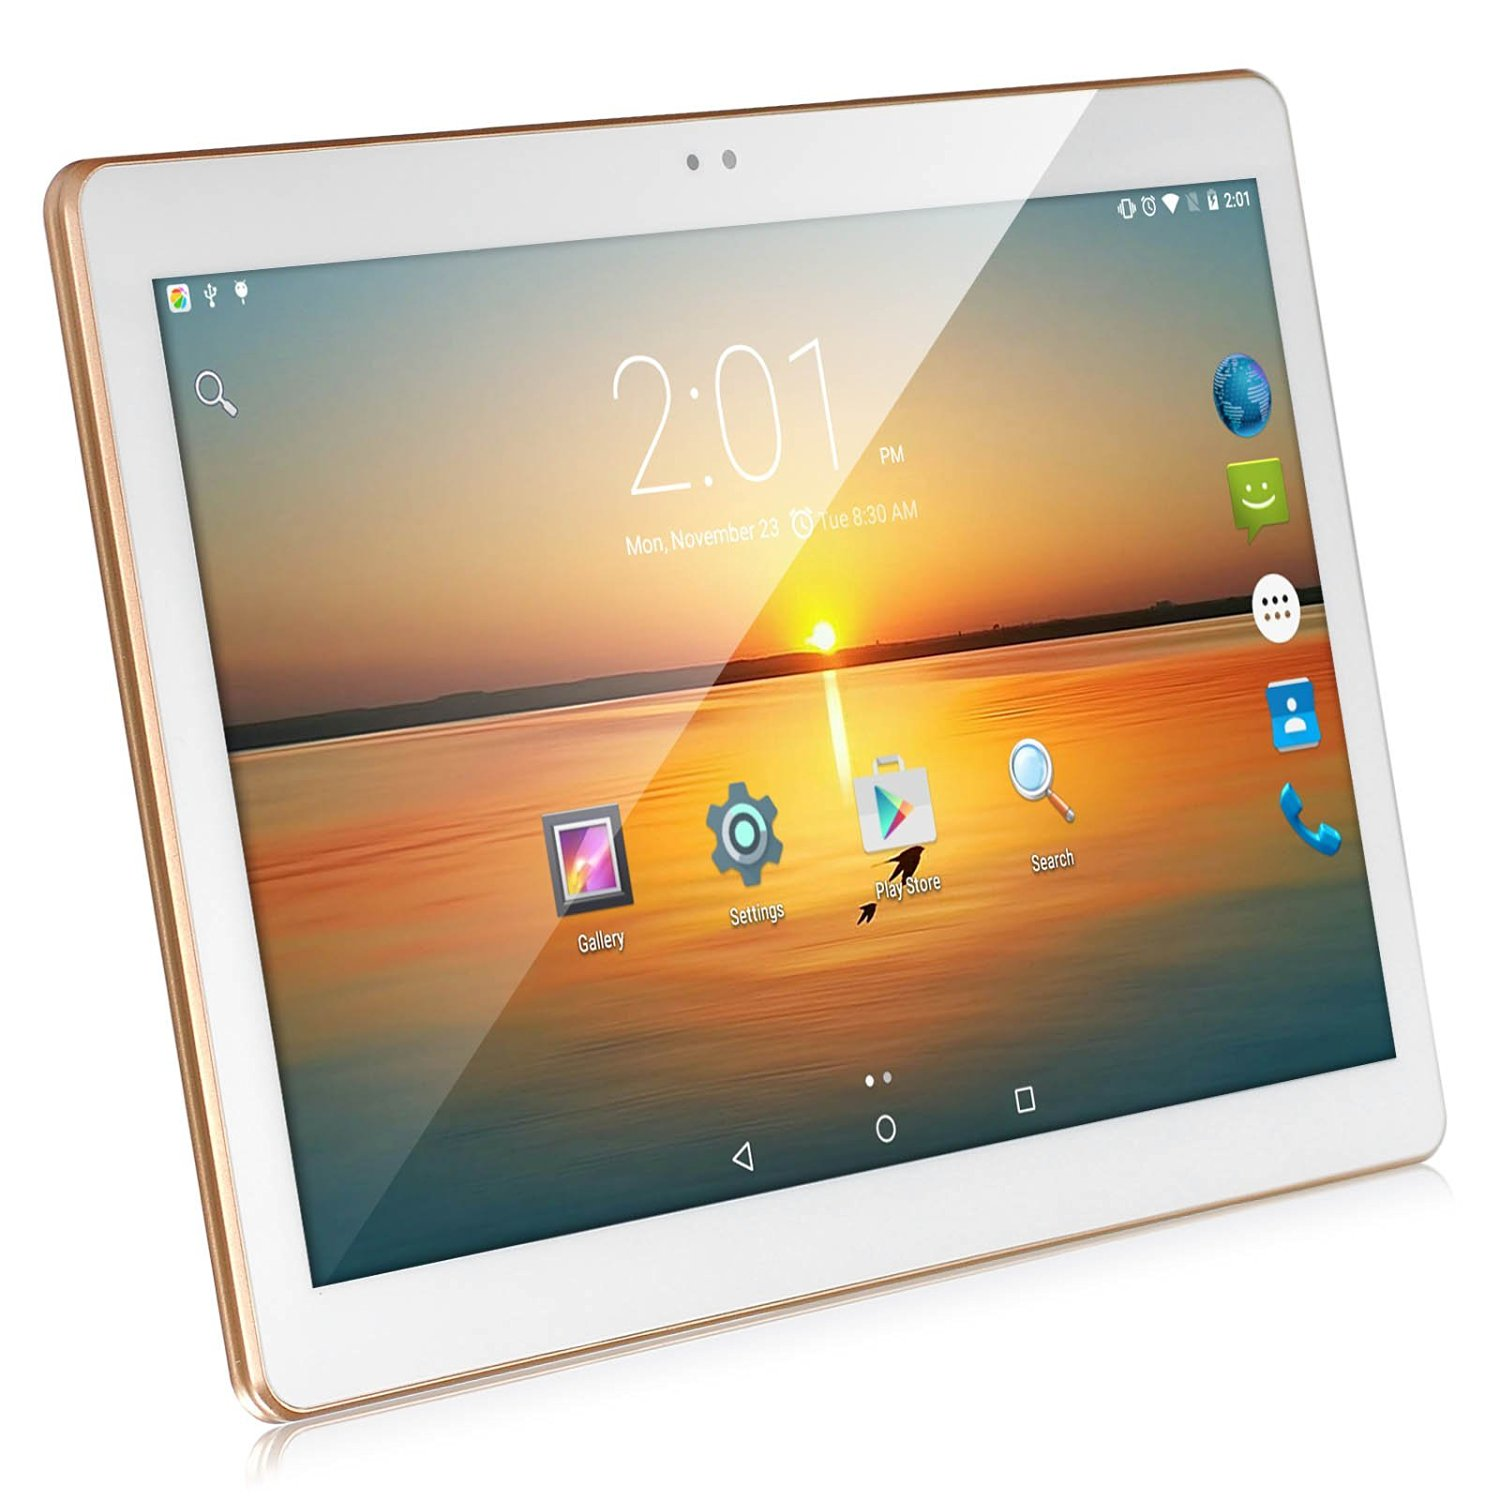 somebody v10 3g dual sim gps 10 inch 1280x800 ips android 5 1 gsm network